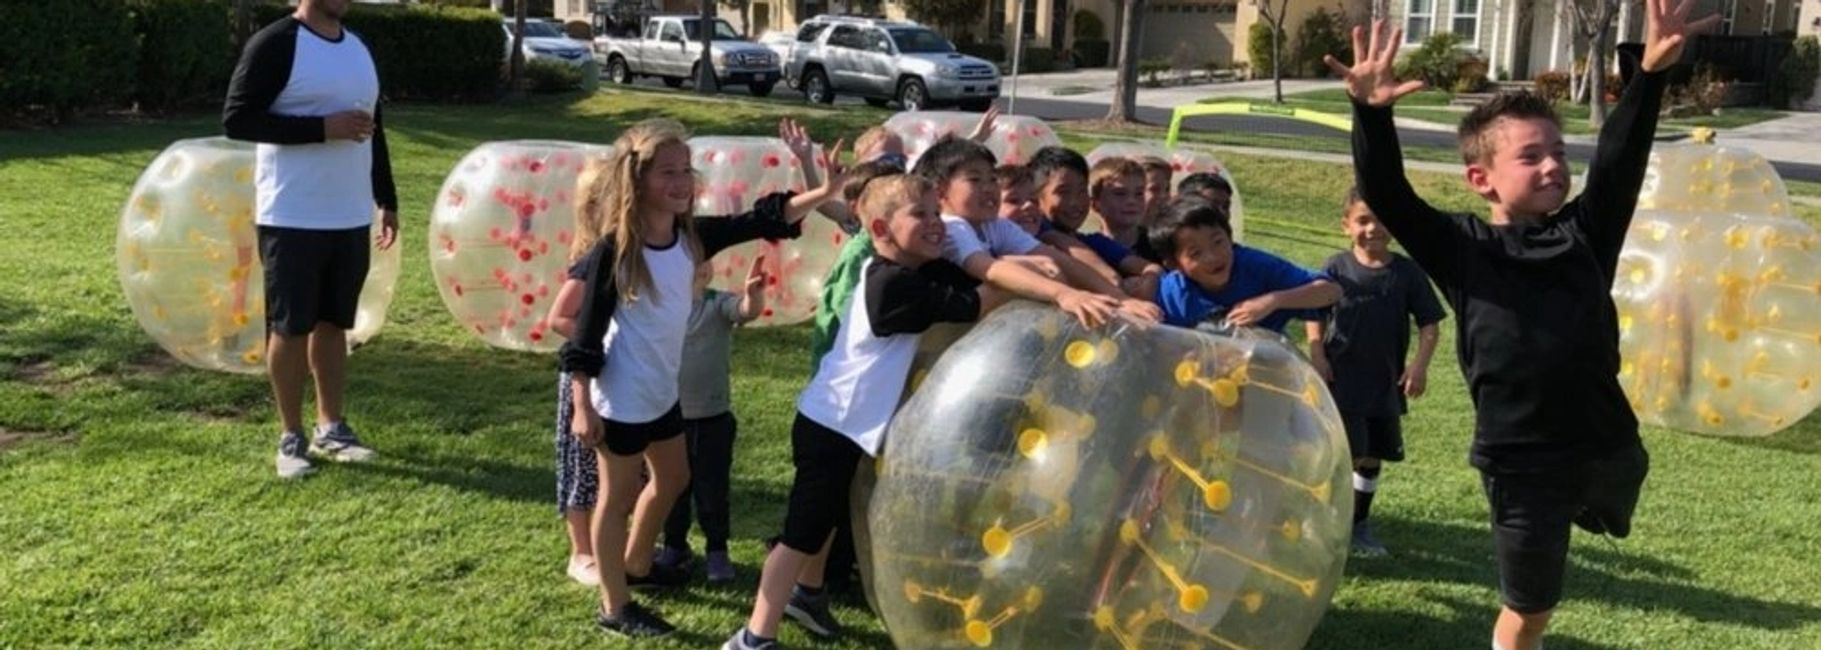 Kids Bubble Soccer Party is one of the best party ideas.  They rented the bubble soccers for team.